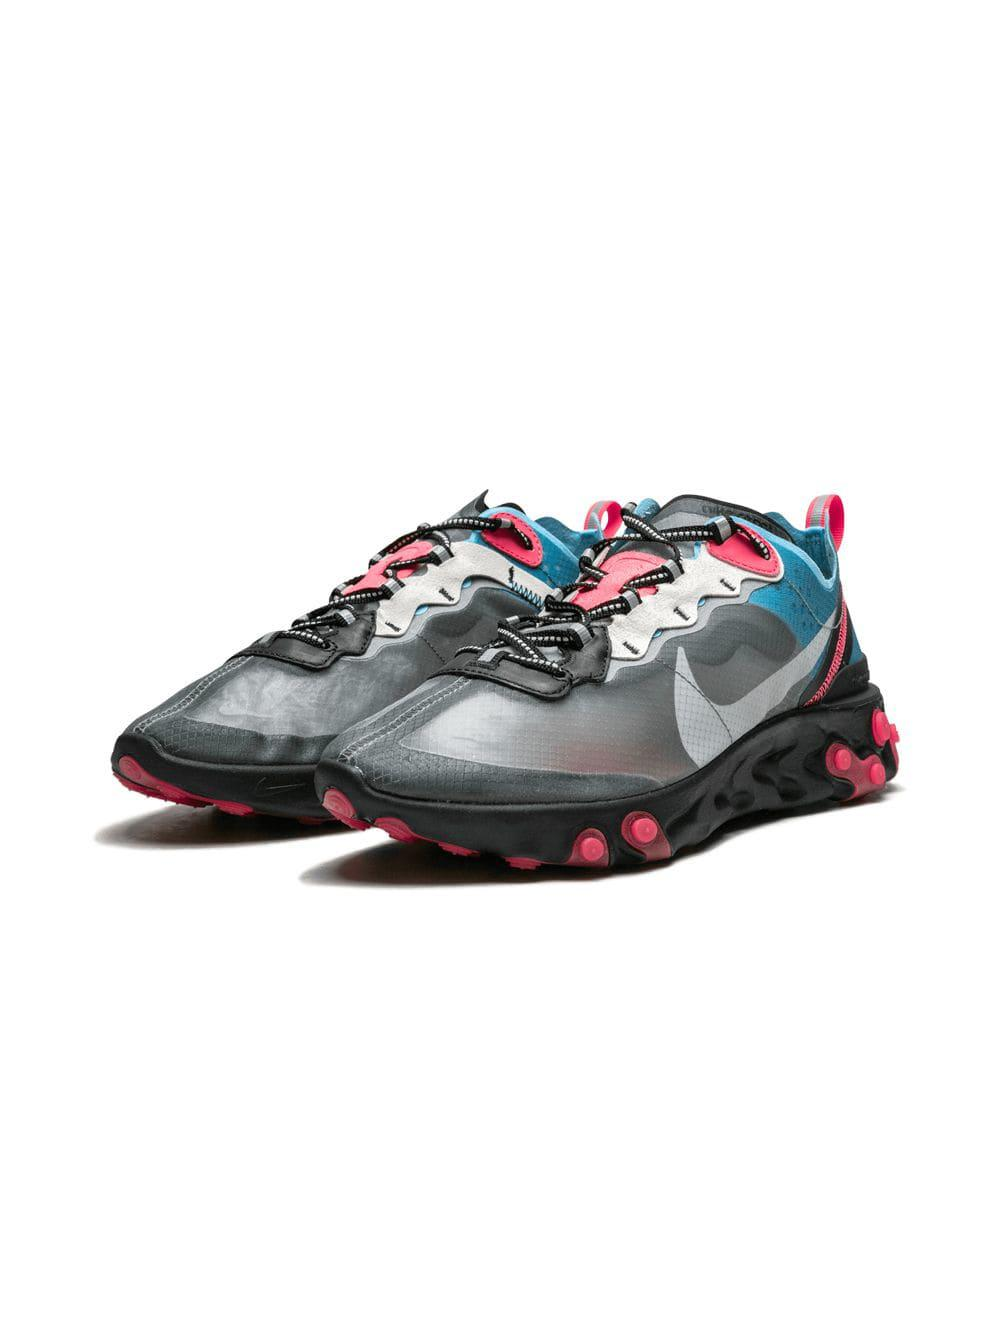 785bd7bee31a Lyst - Nike React Element 87 Sneakers in Gray for Men